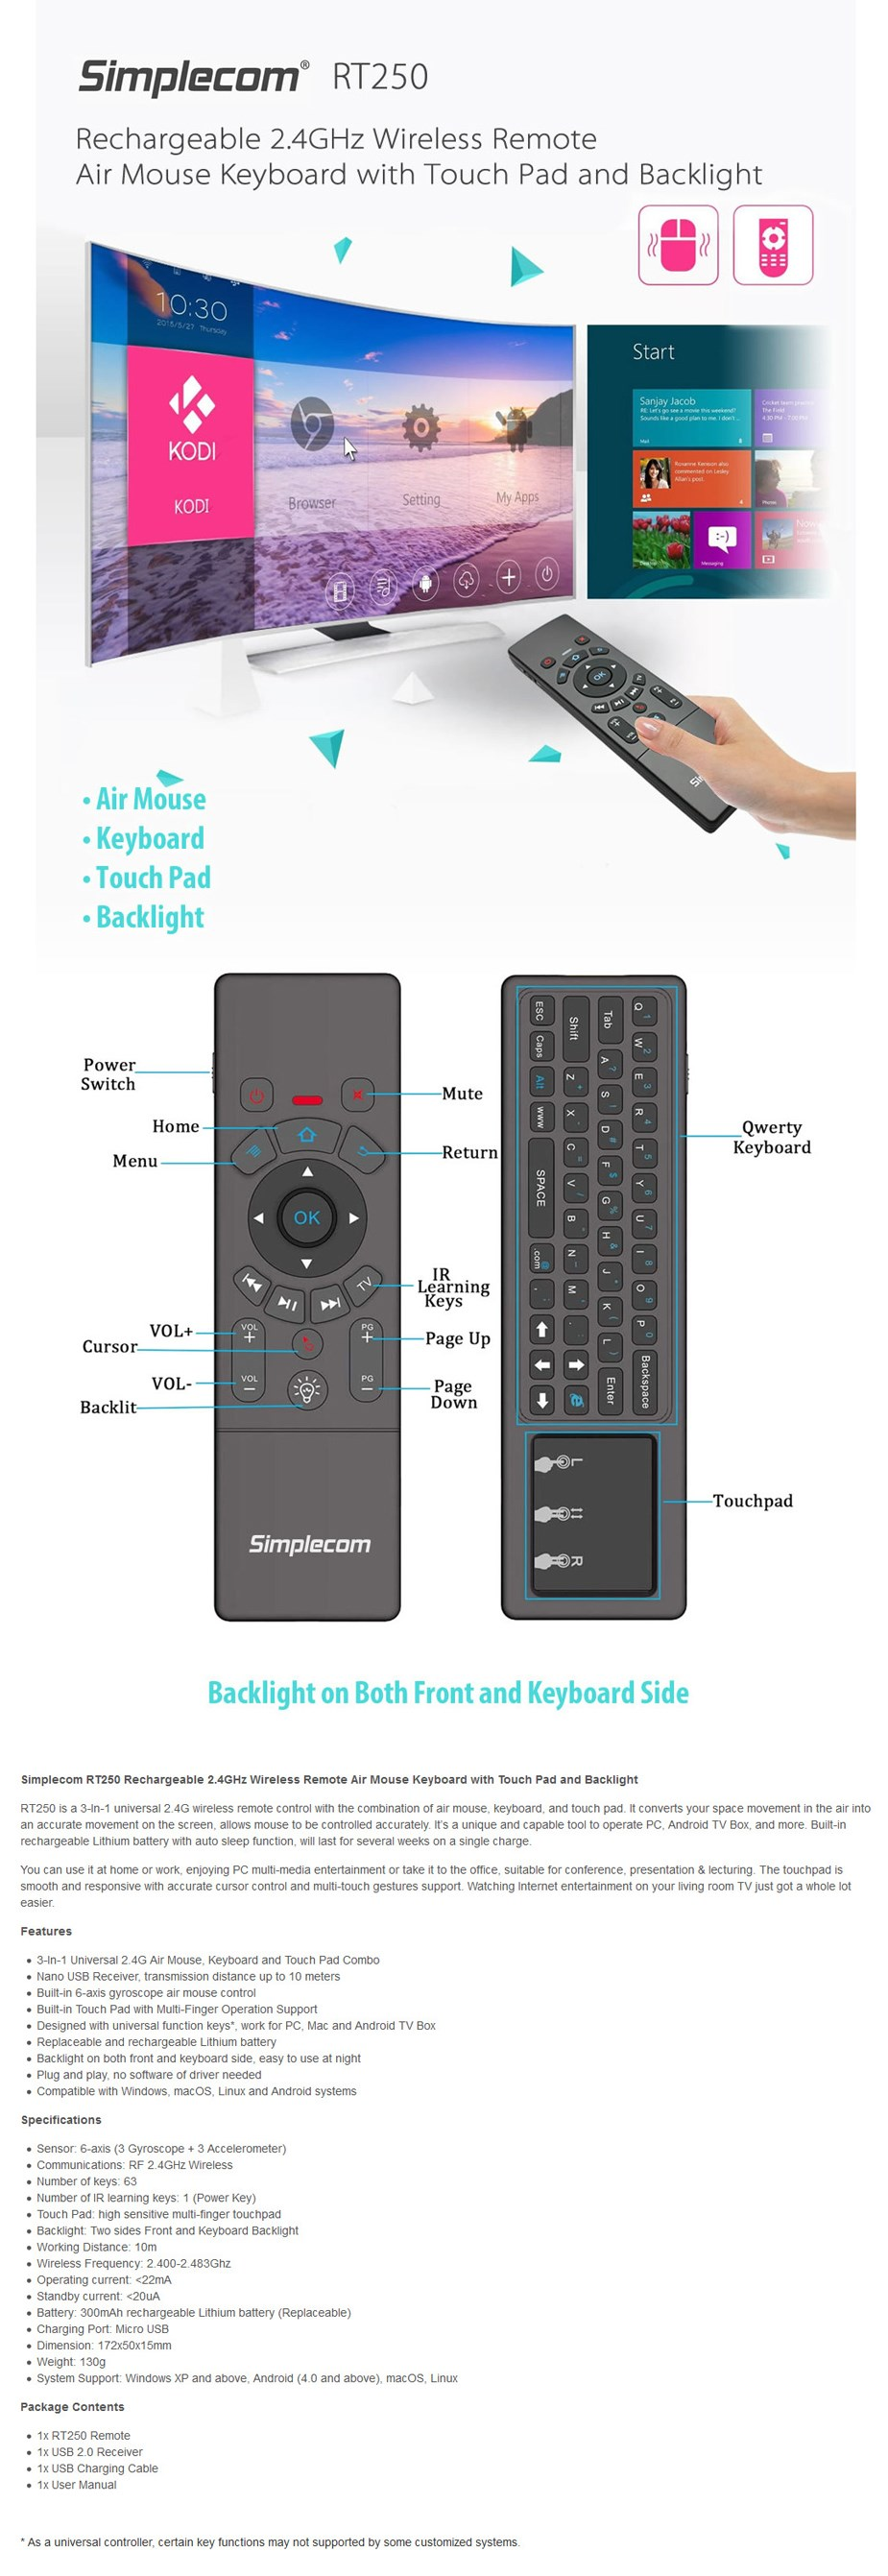 Simplecom RT250 Rechargeable 2.4GHz Wireless Remote - Overview 1